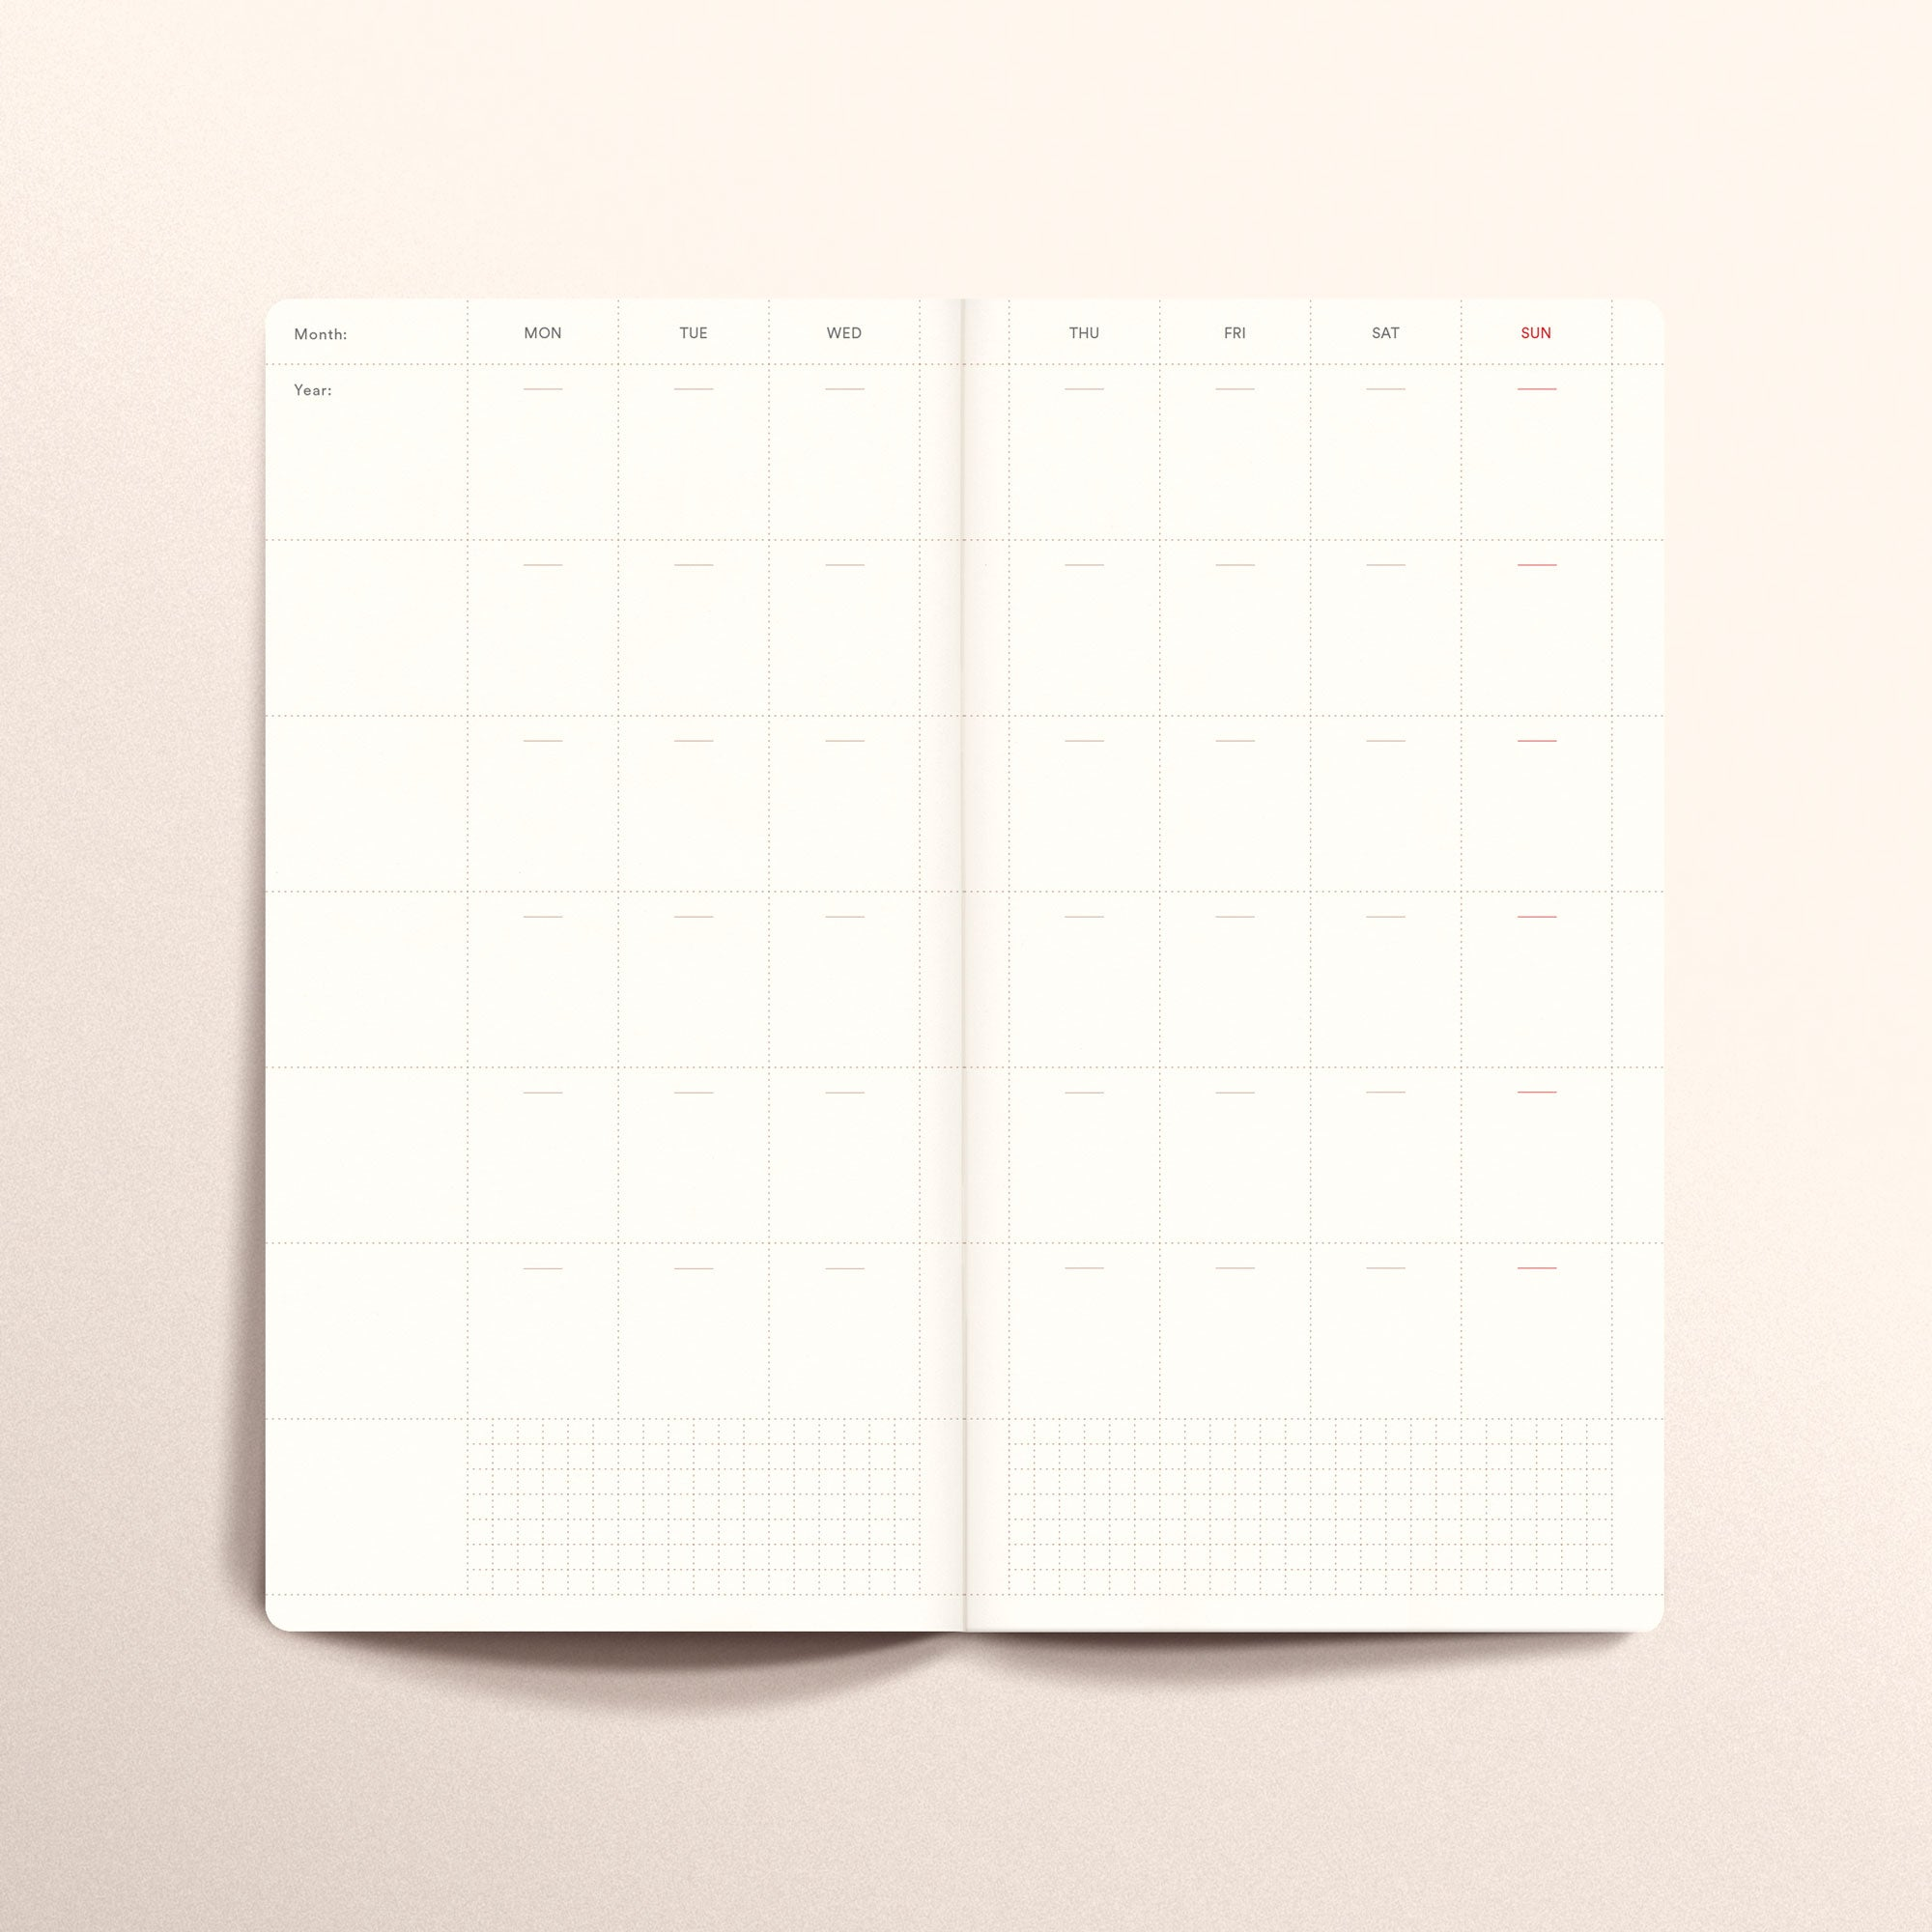 N.302 (Undated Weekly Planner) Slim / Traveler's notebook size [G]